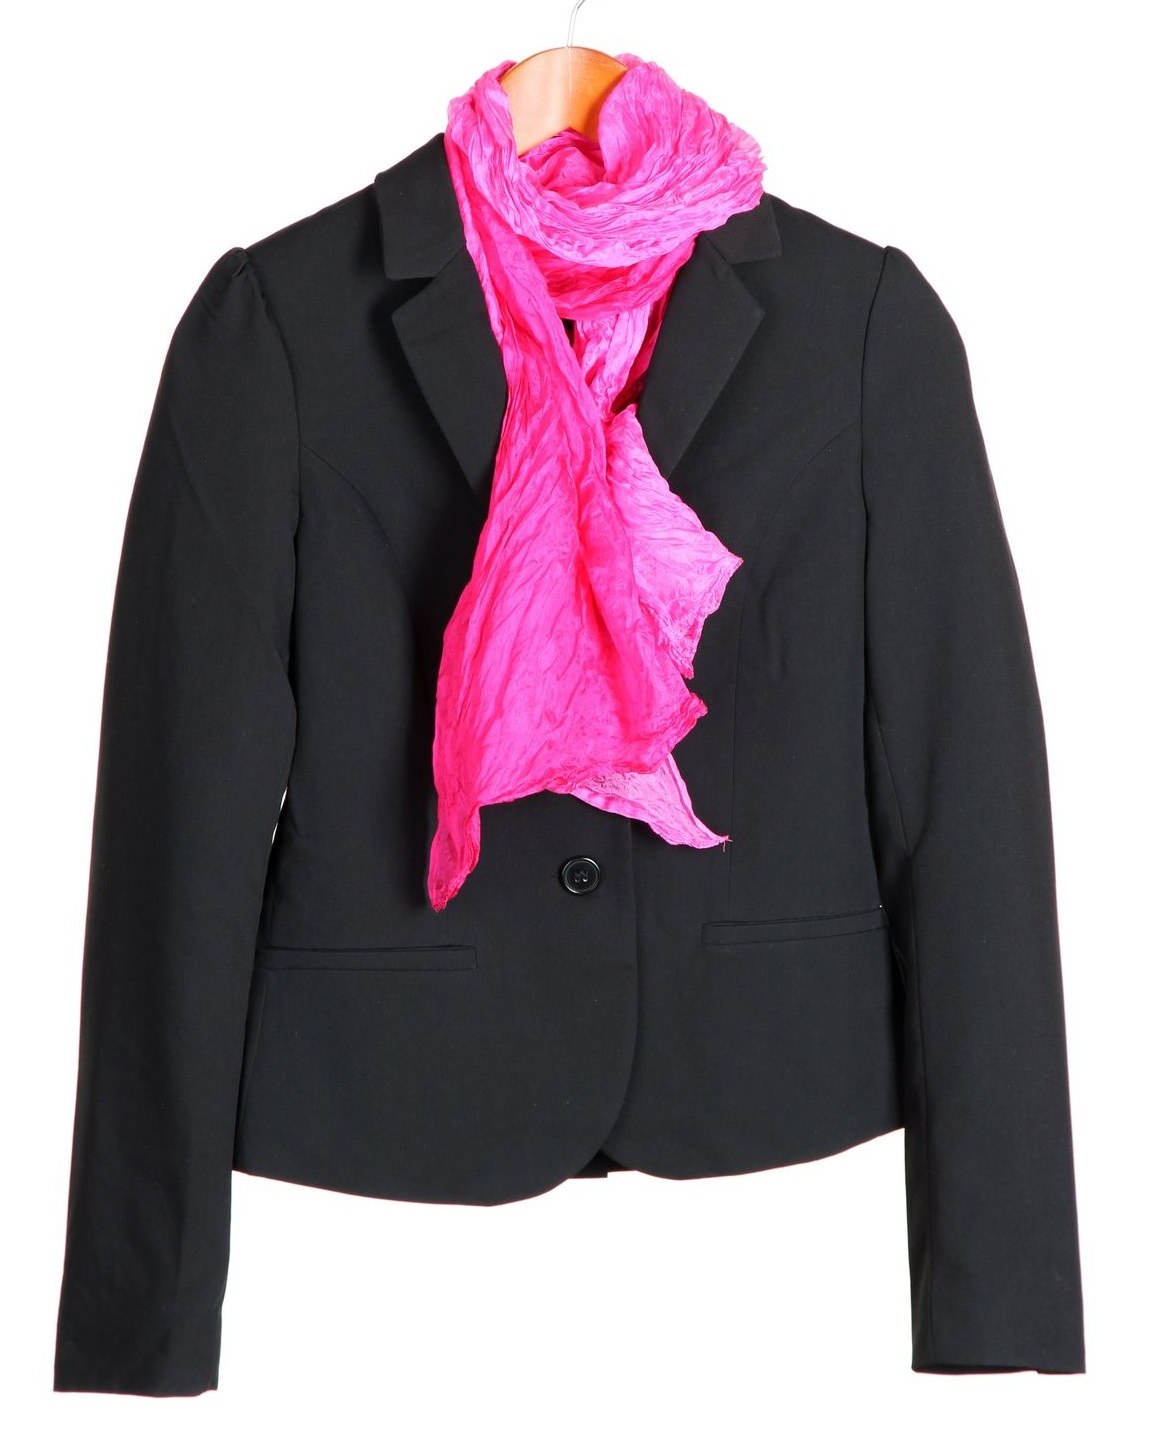 Add a black blazer & scarf